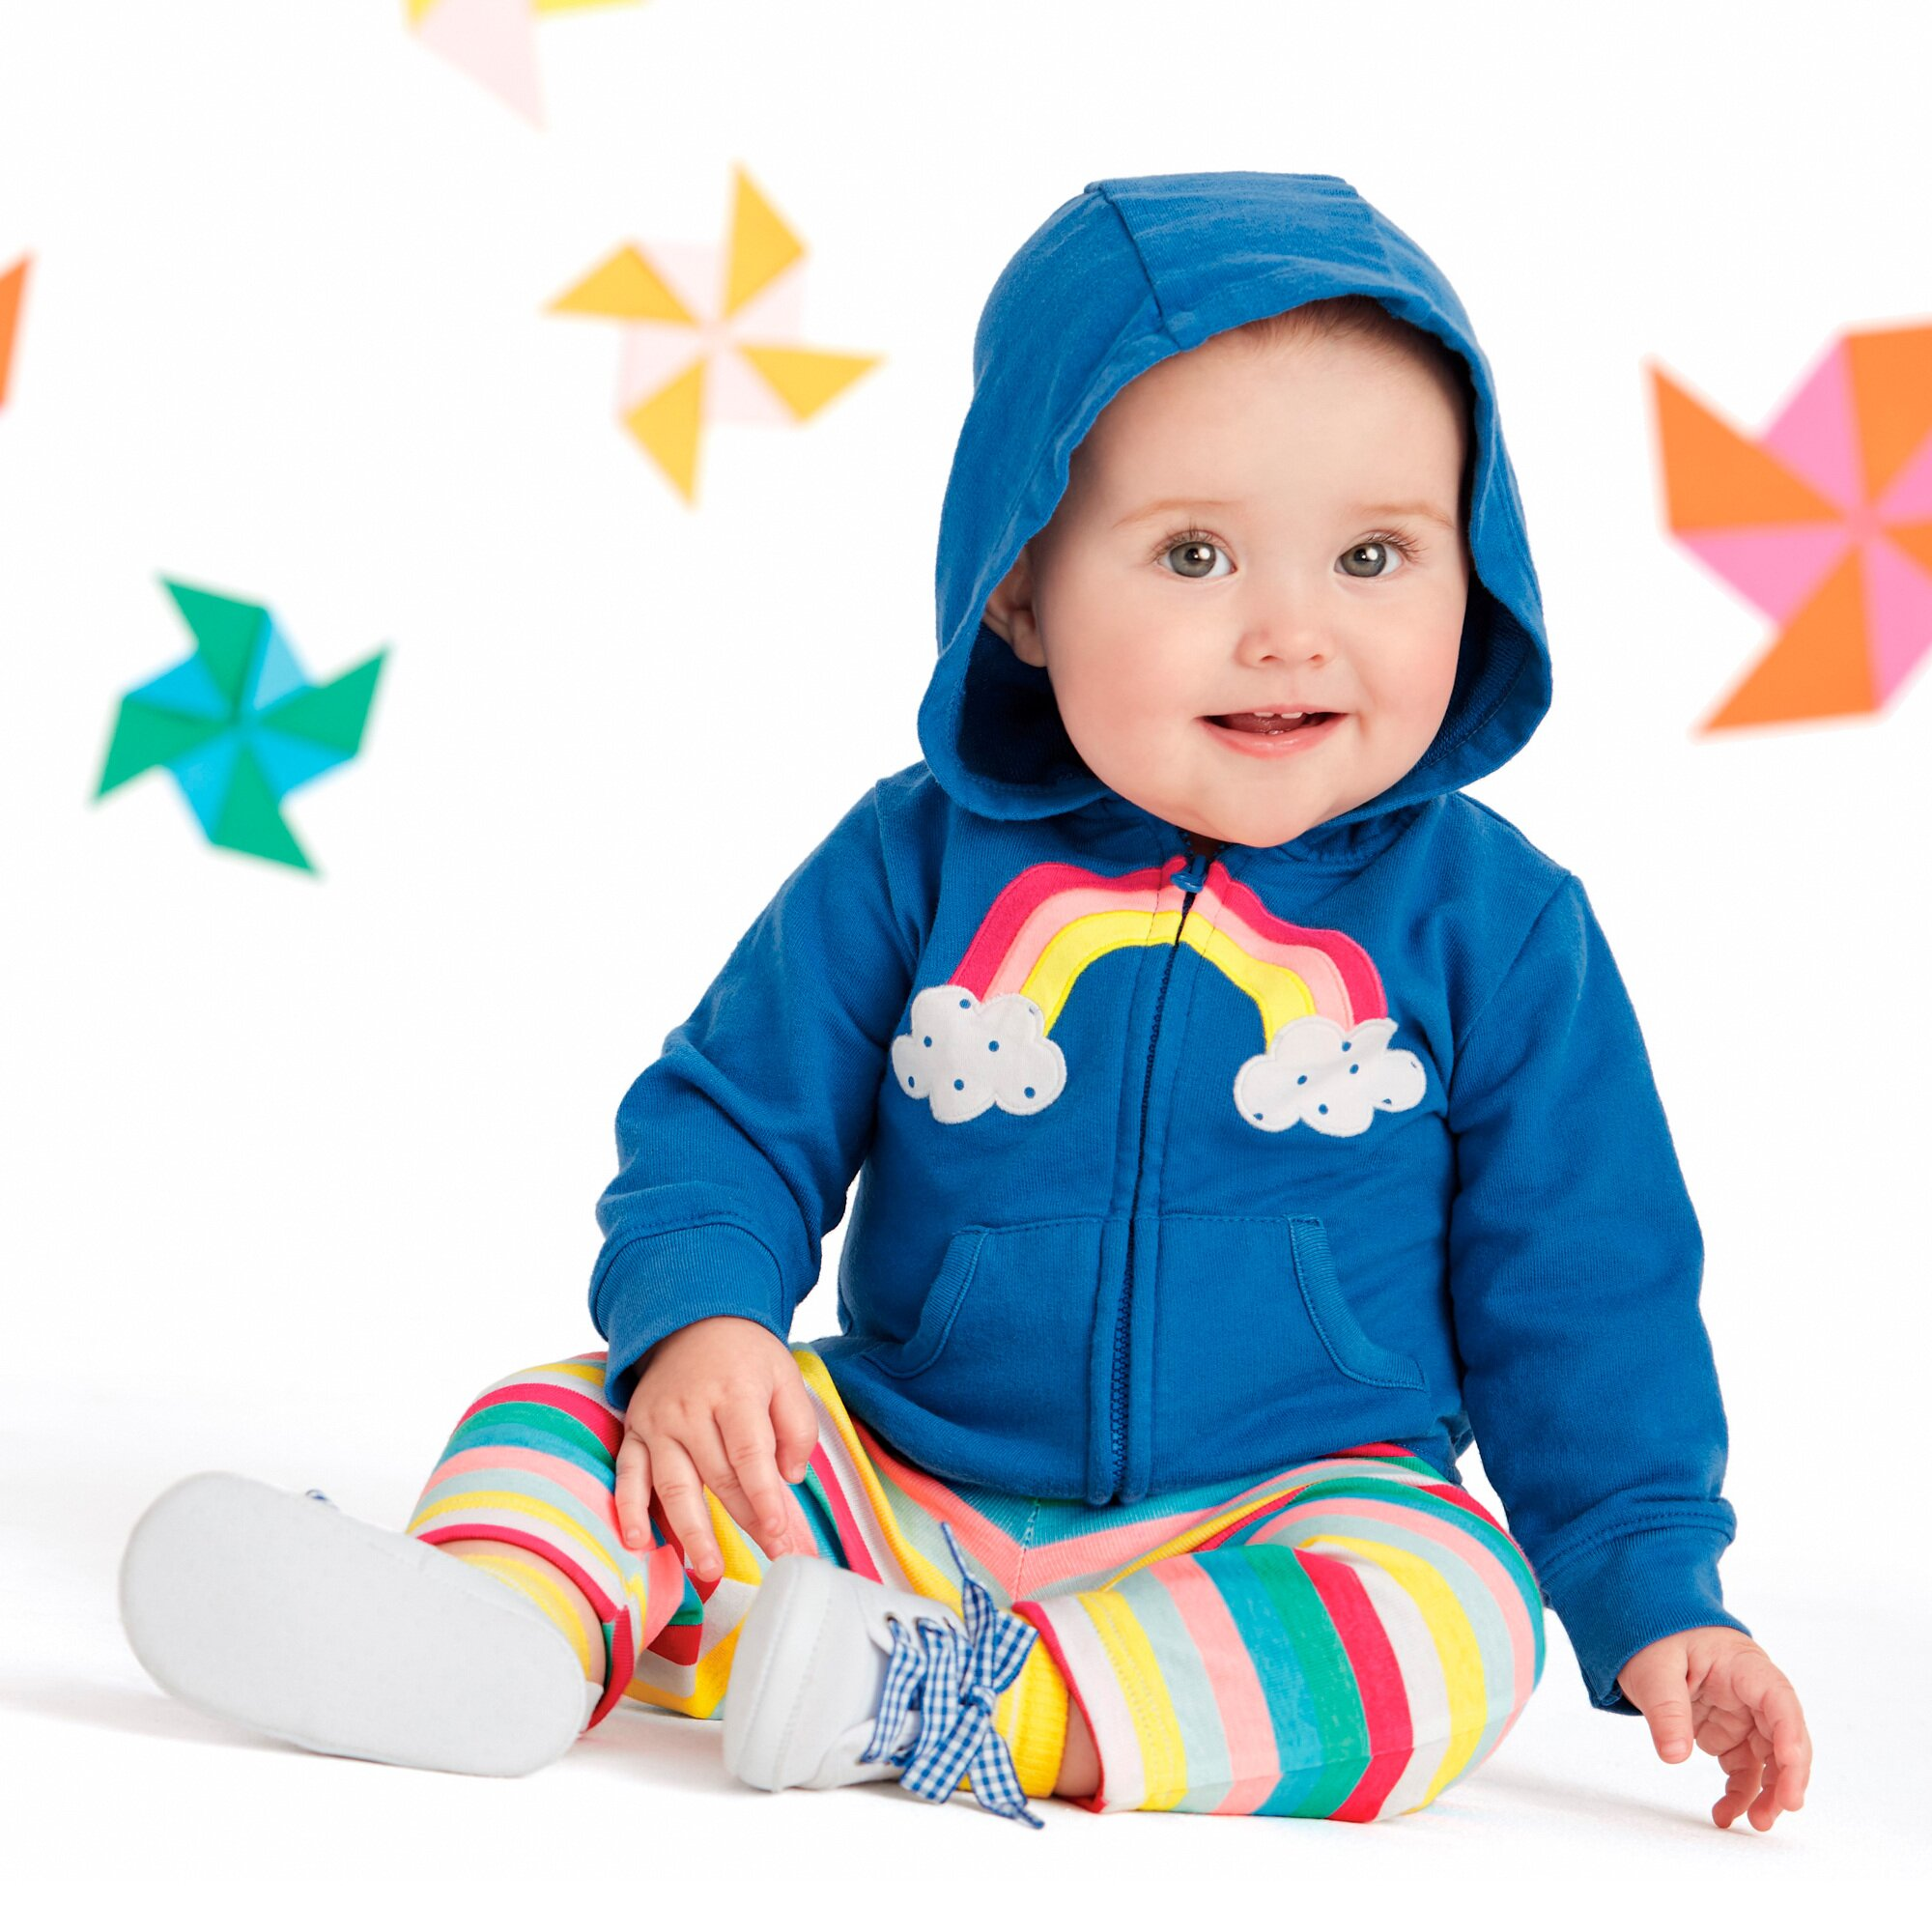 carter-s-3-tlg-set-sweatjacke-body-kurzarm-und-leggings-regenbogen